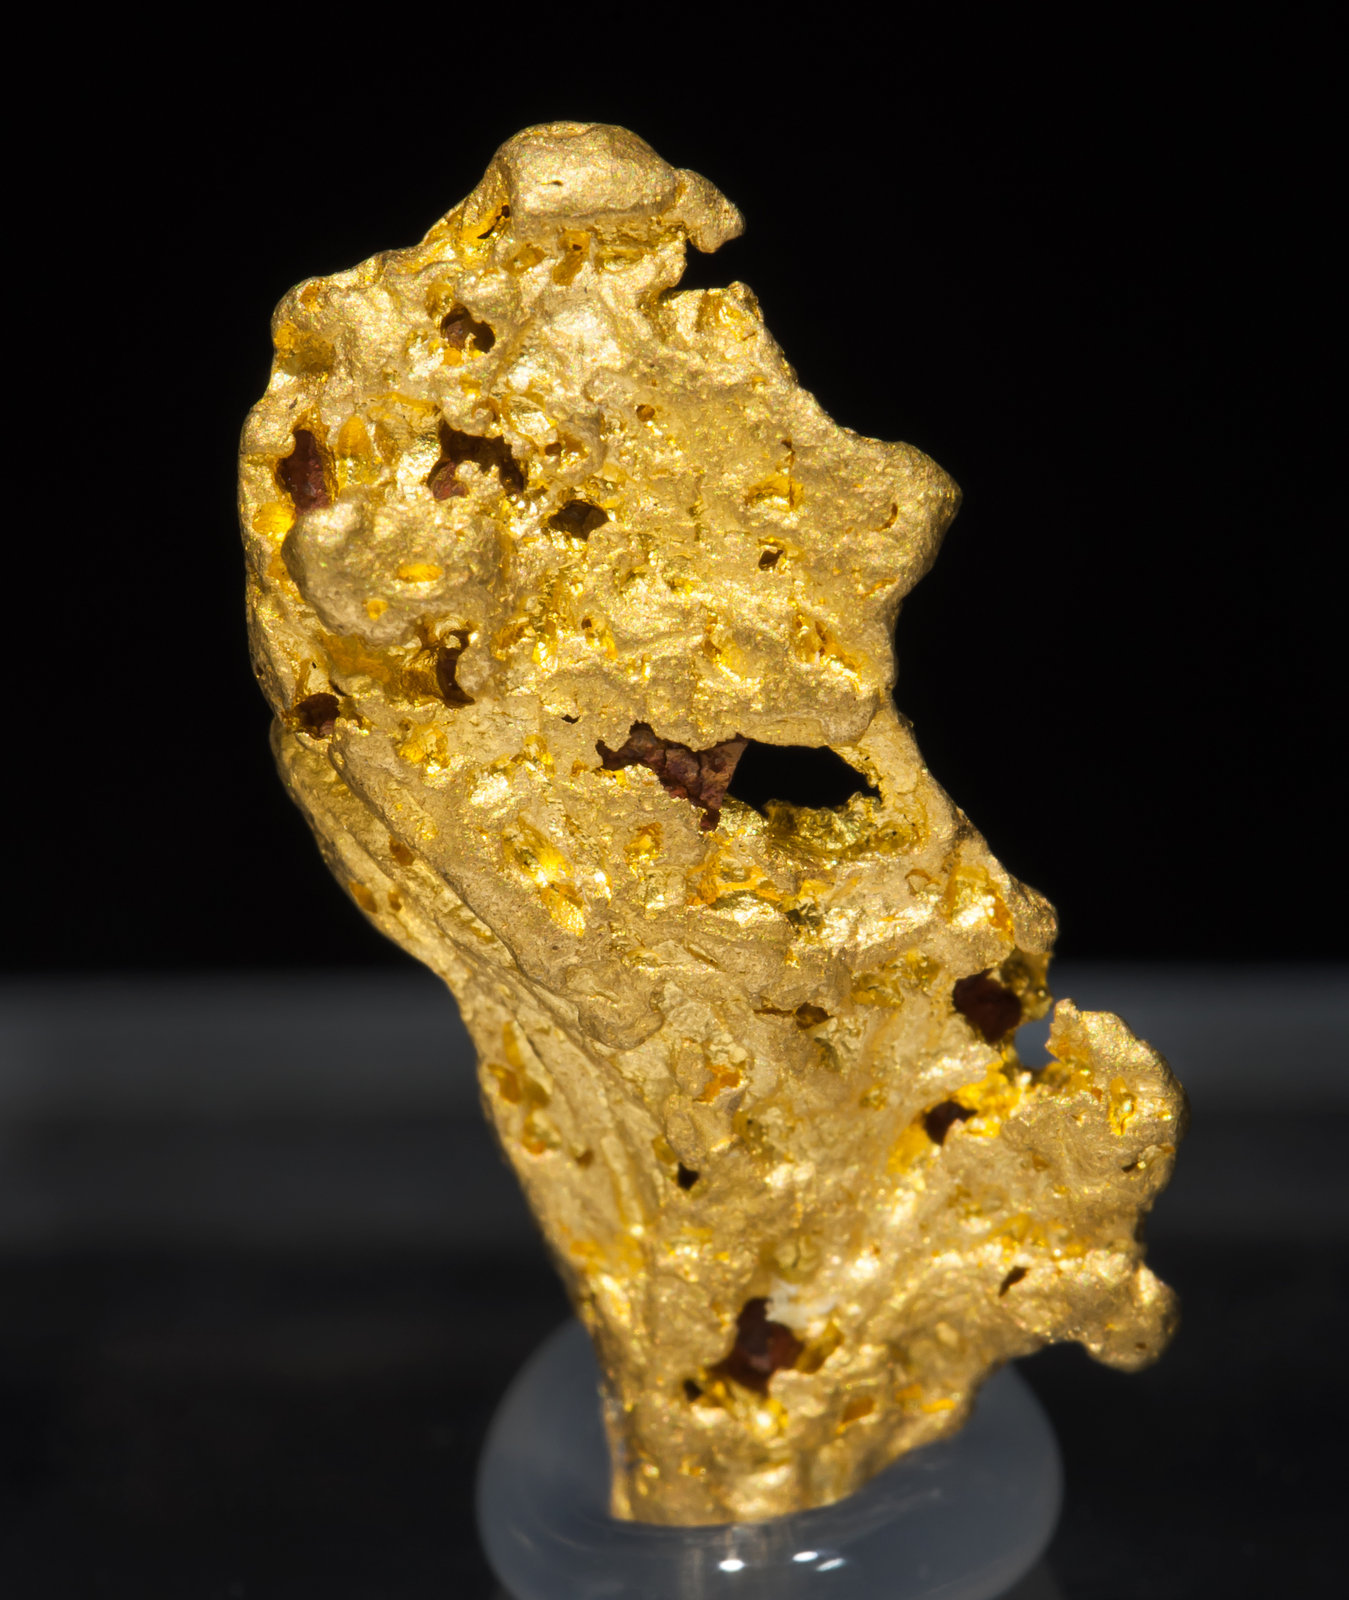 specimens/s_imagesAC4/Gold-NR97AC4f.jpg